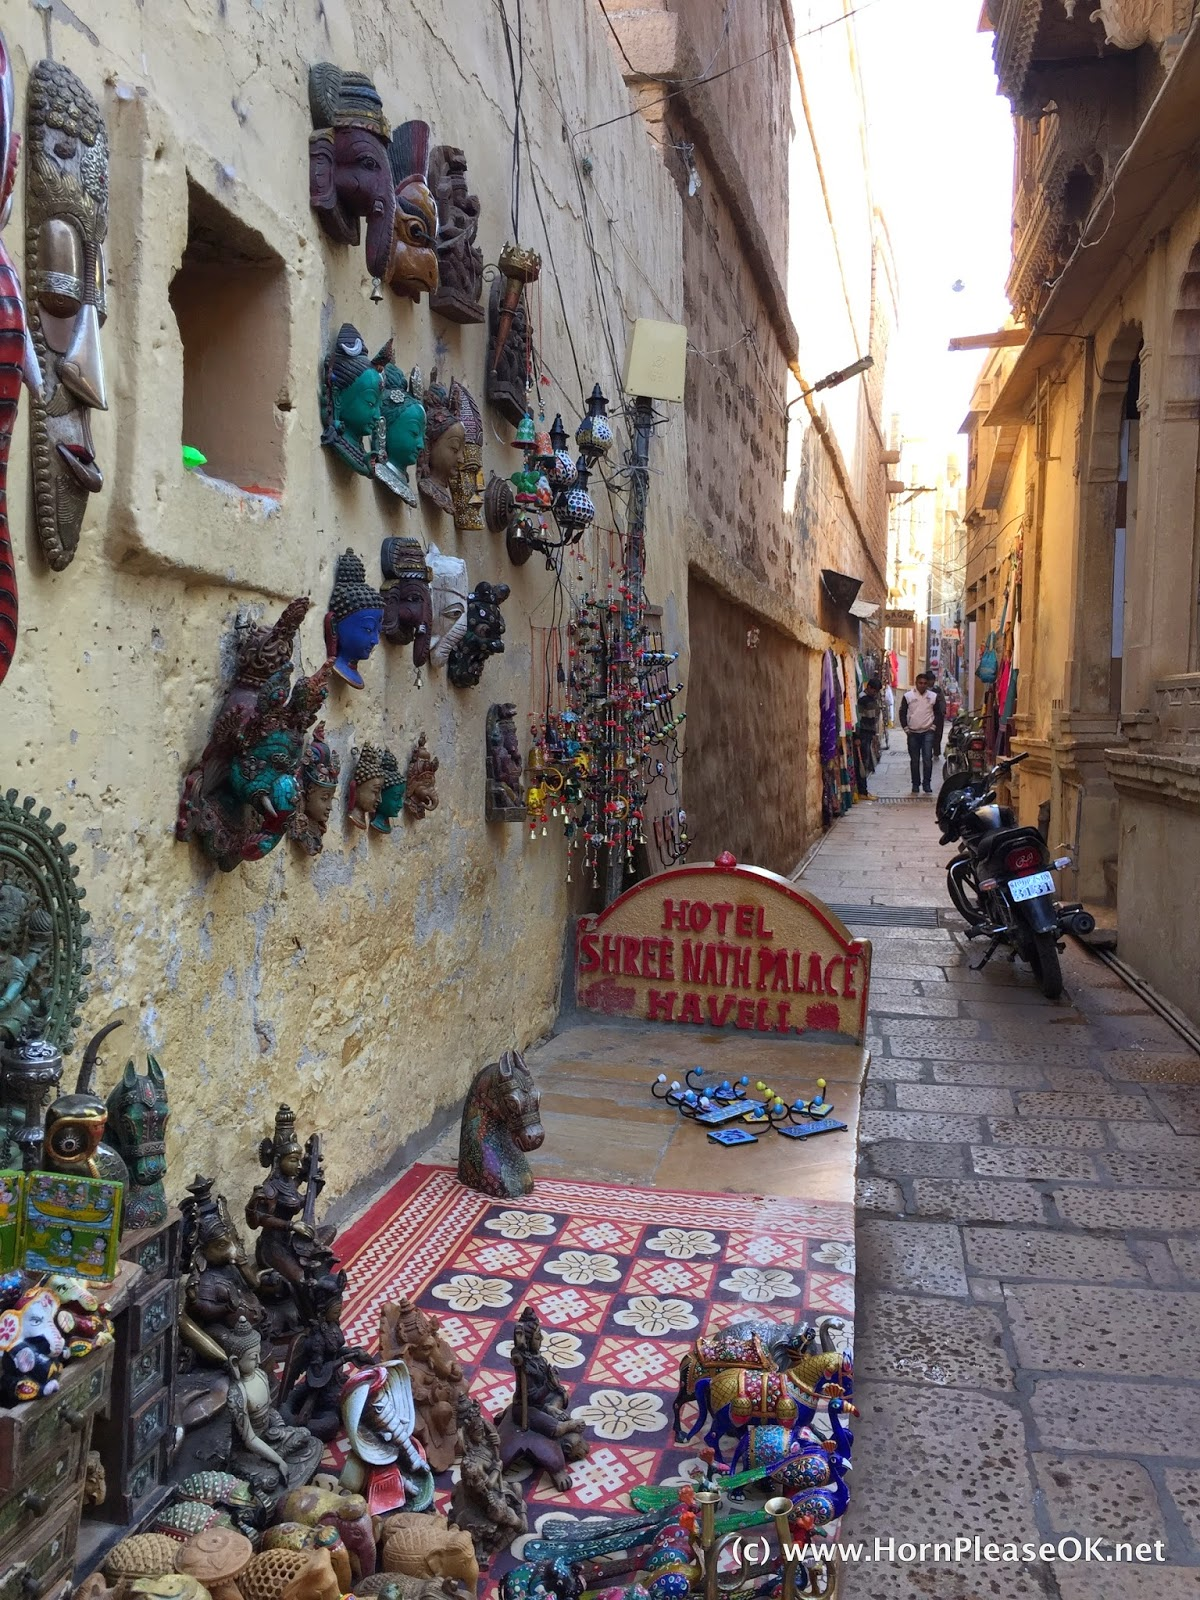 Narrow lanes selling souvenirs inside Jaisalmer Fort